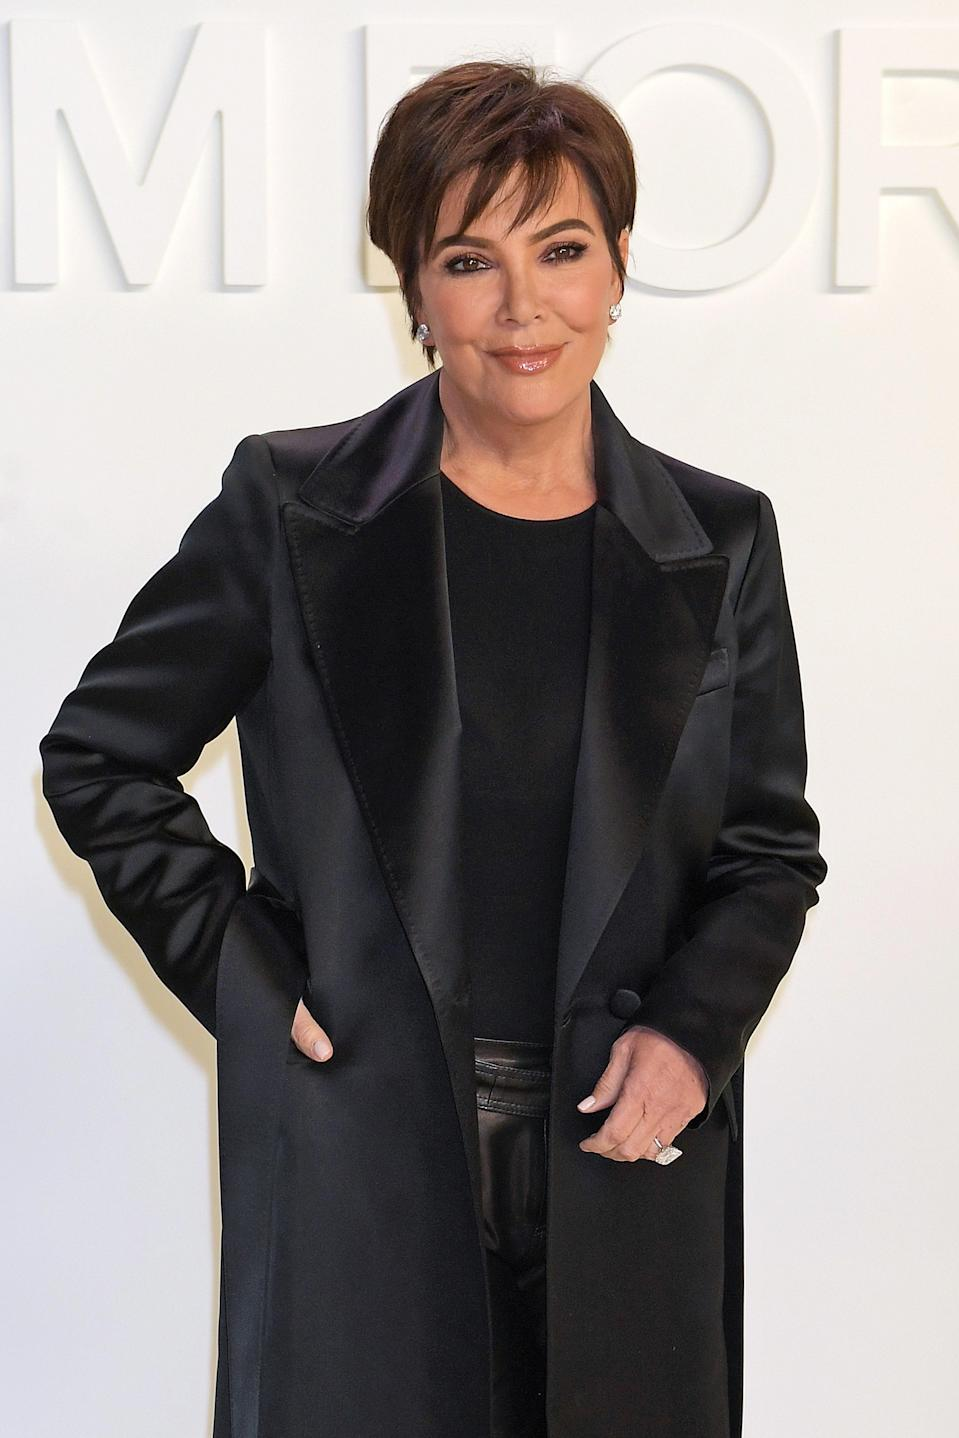 Jenner has one of the most iconic pixie cuts in the biz, and for a good reason. The side-swept bangs emphasize her features and the length is just long enough to be versatile.